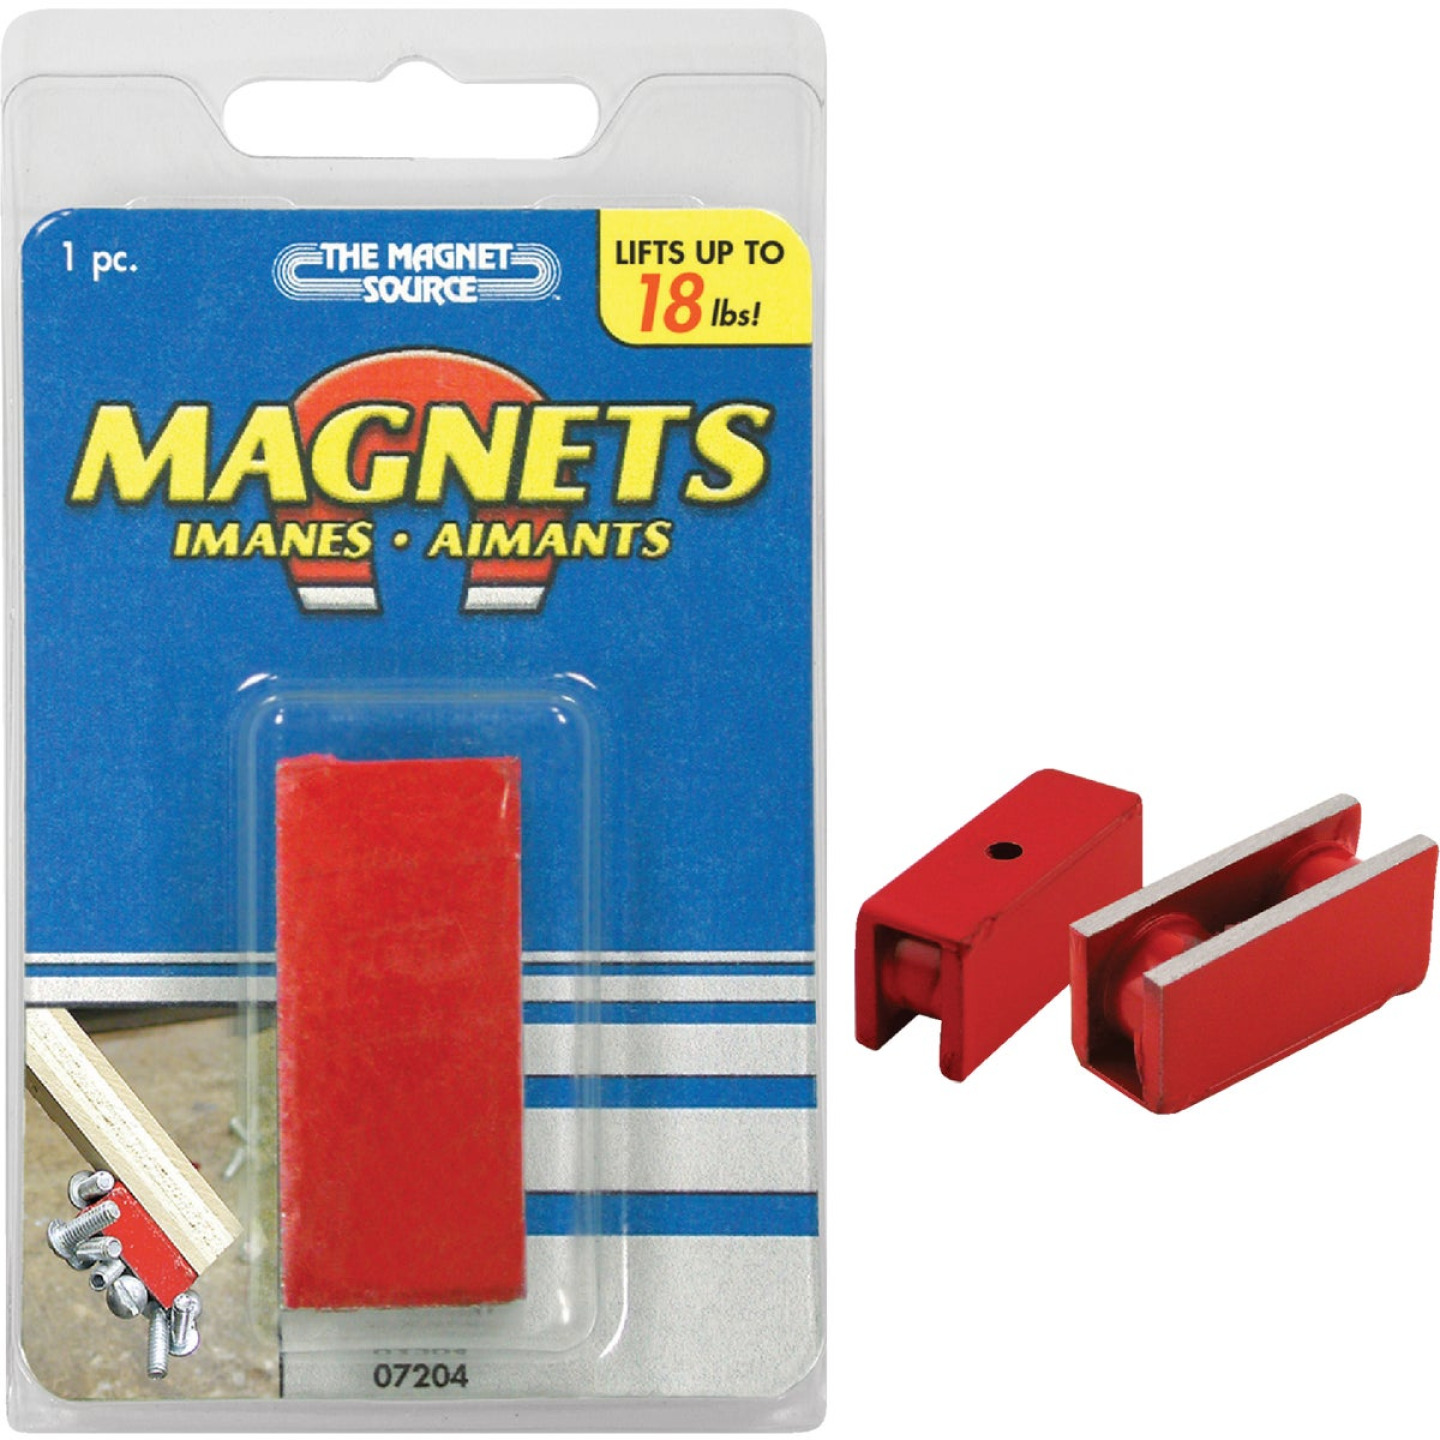 Master Magnetics 18 Lb. Holding and Retrieving Magnet Image 1